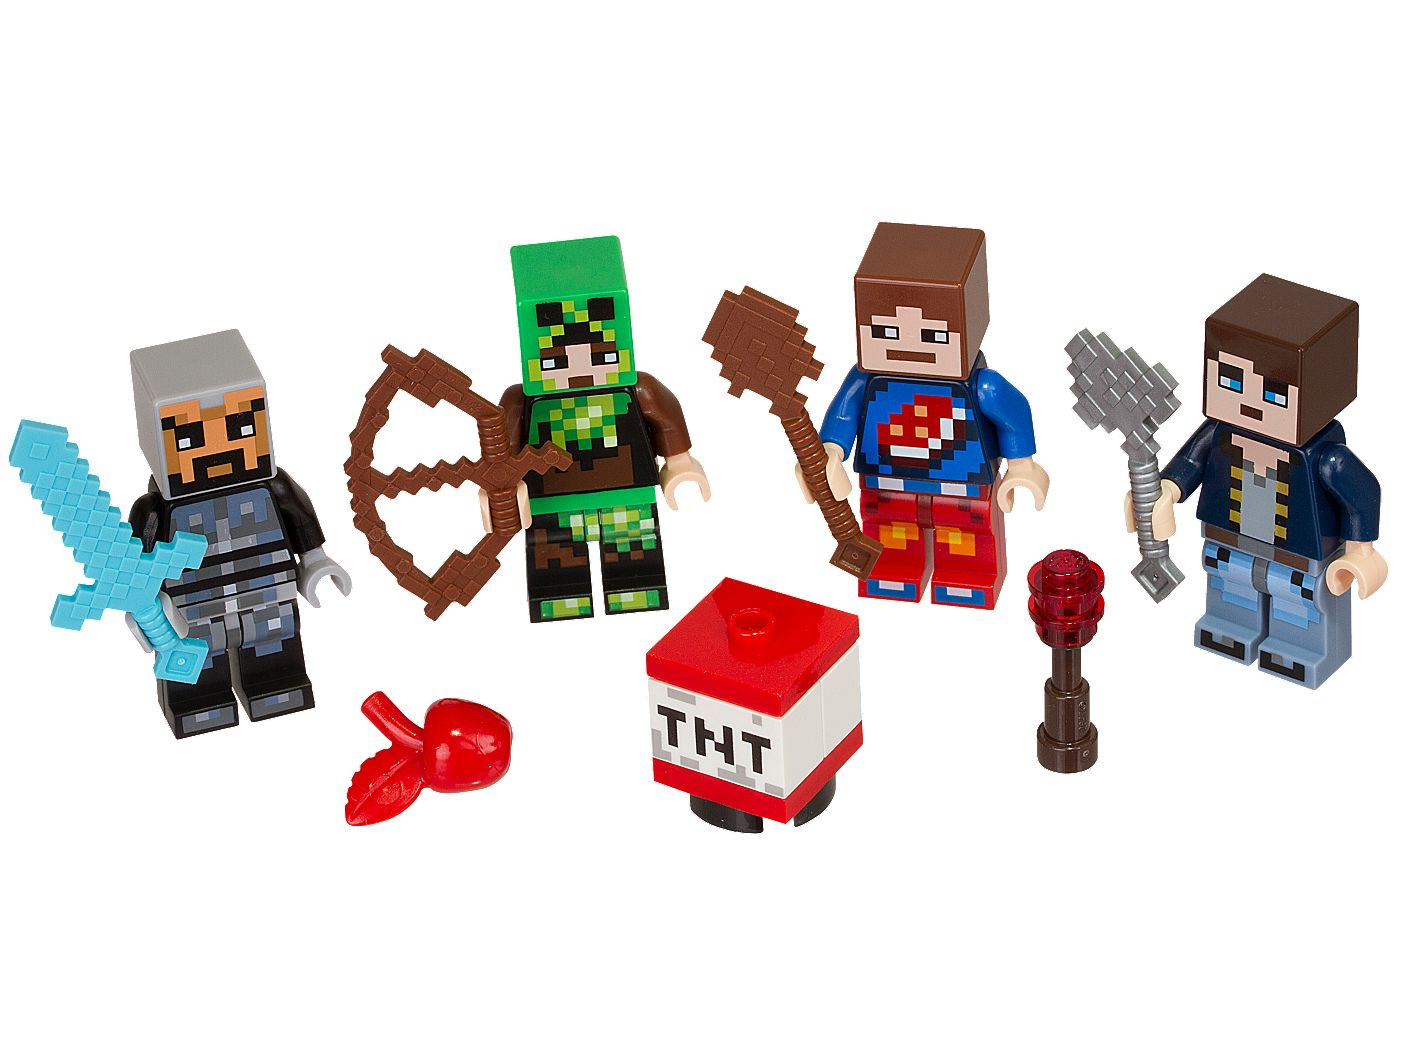 Lego Minecraft Skin Pack 1 853609 Minecraft Buy Online At The Official Lego Shop Us